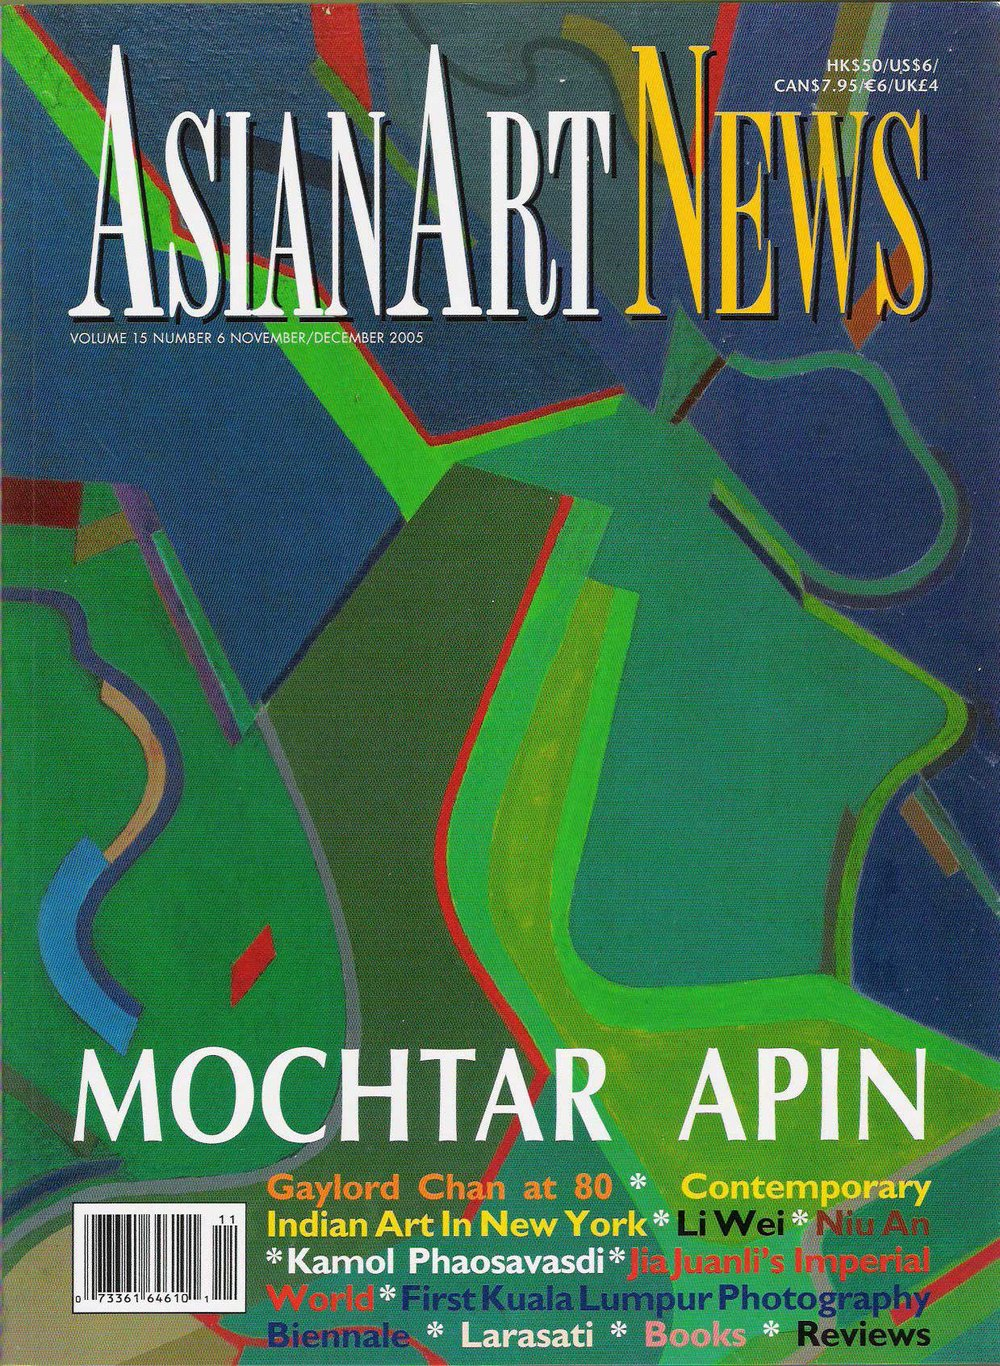 asianArtNews-bookreview-pg1.jpg